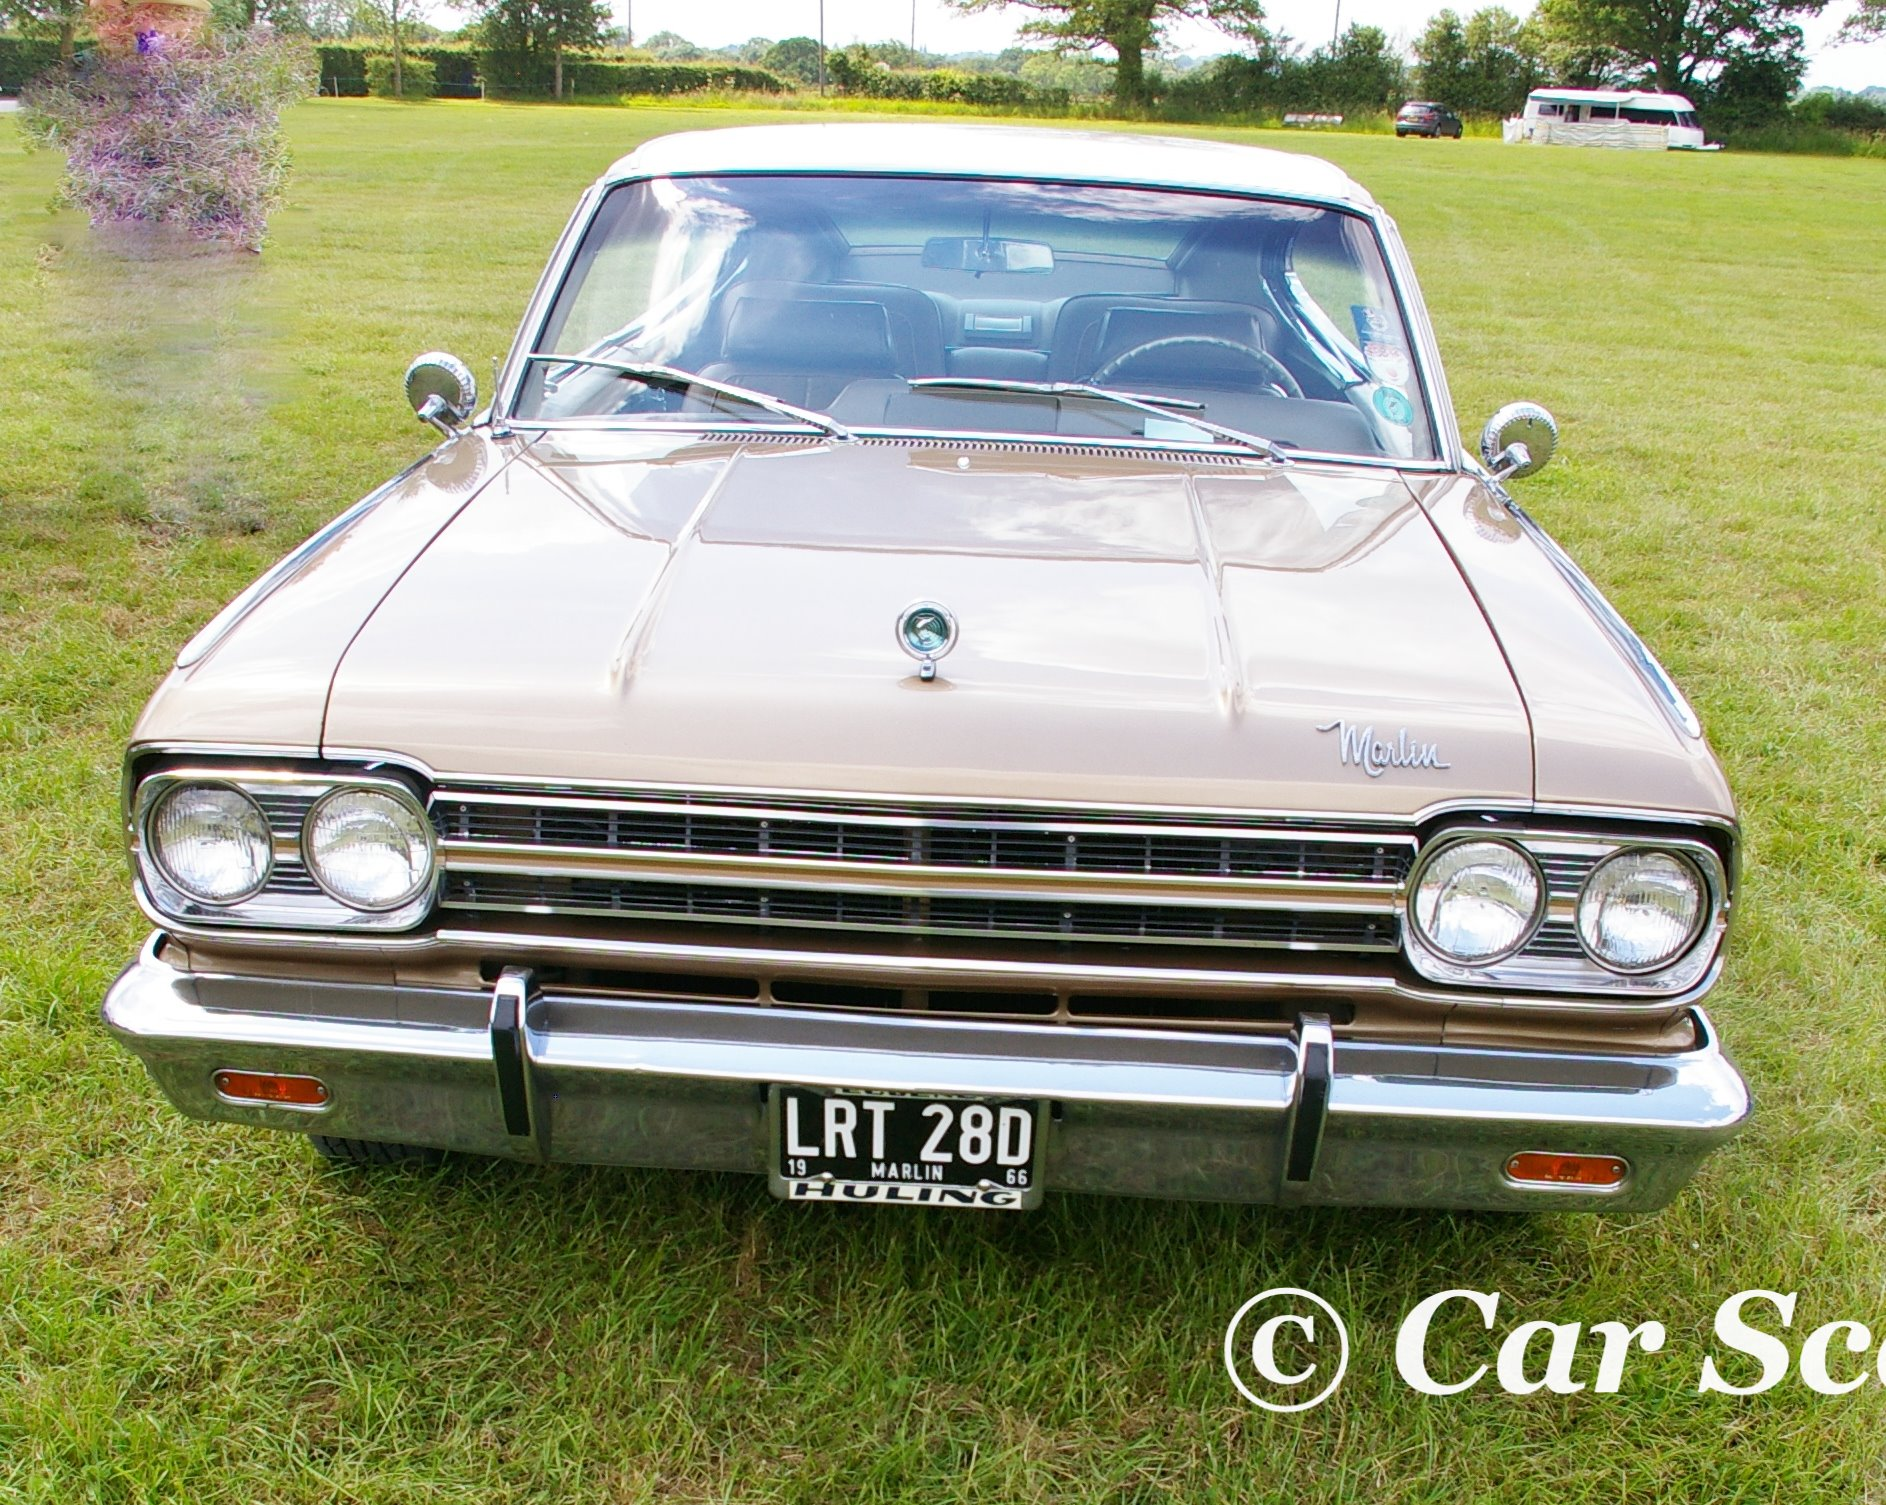 1966 AMC Marlin front view